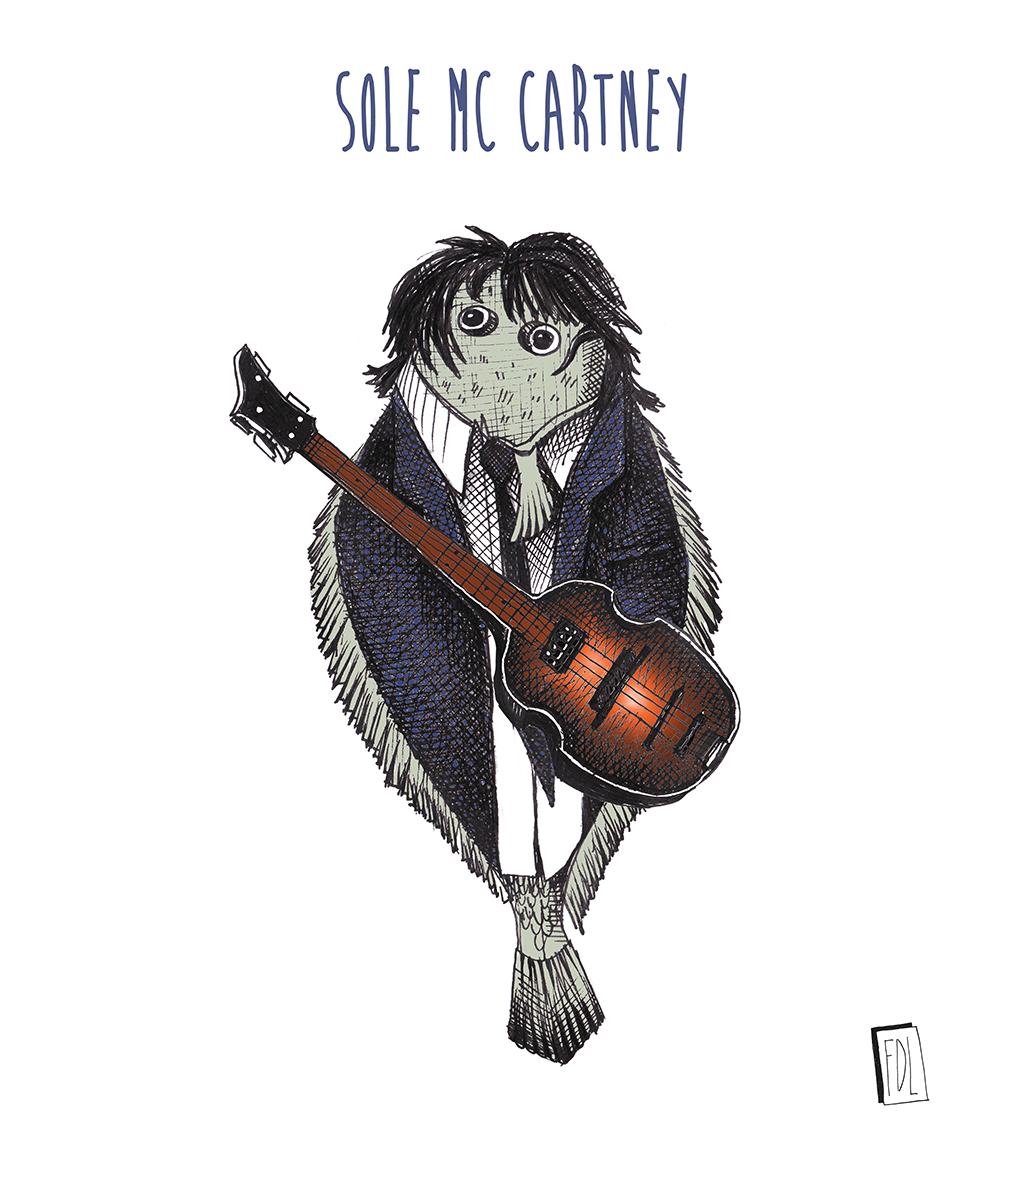 SOLE MC CARTNEY